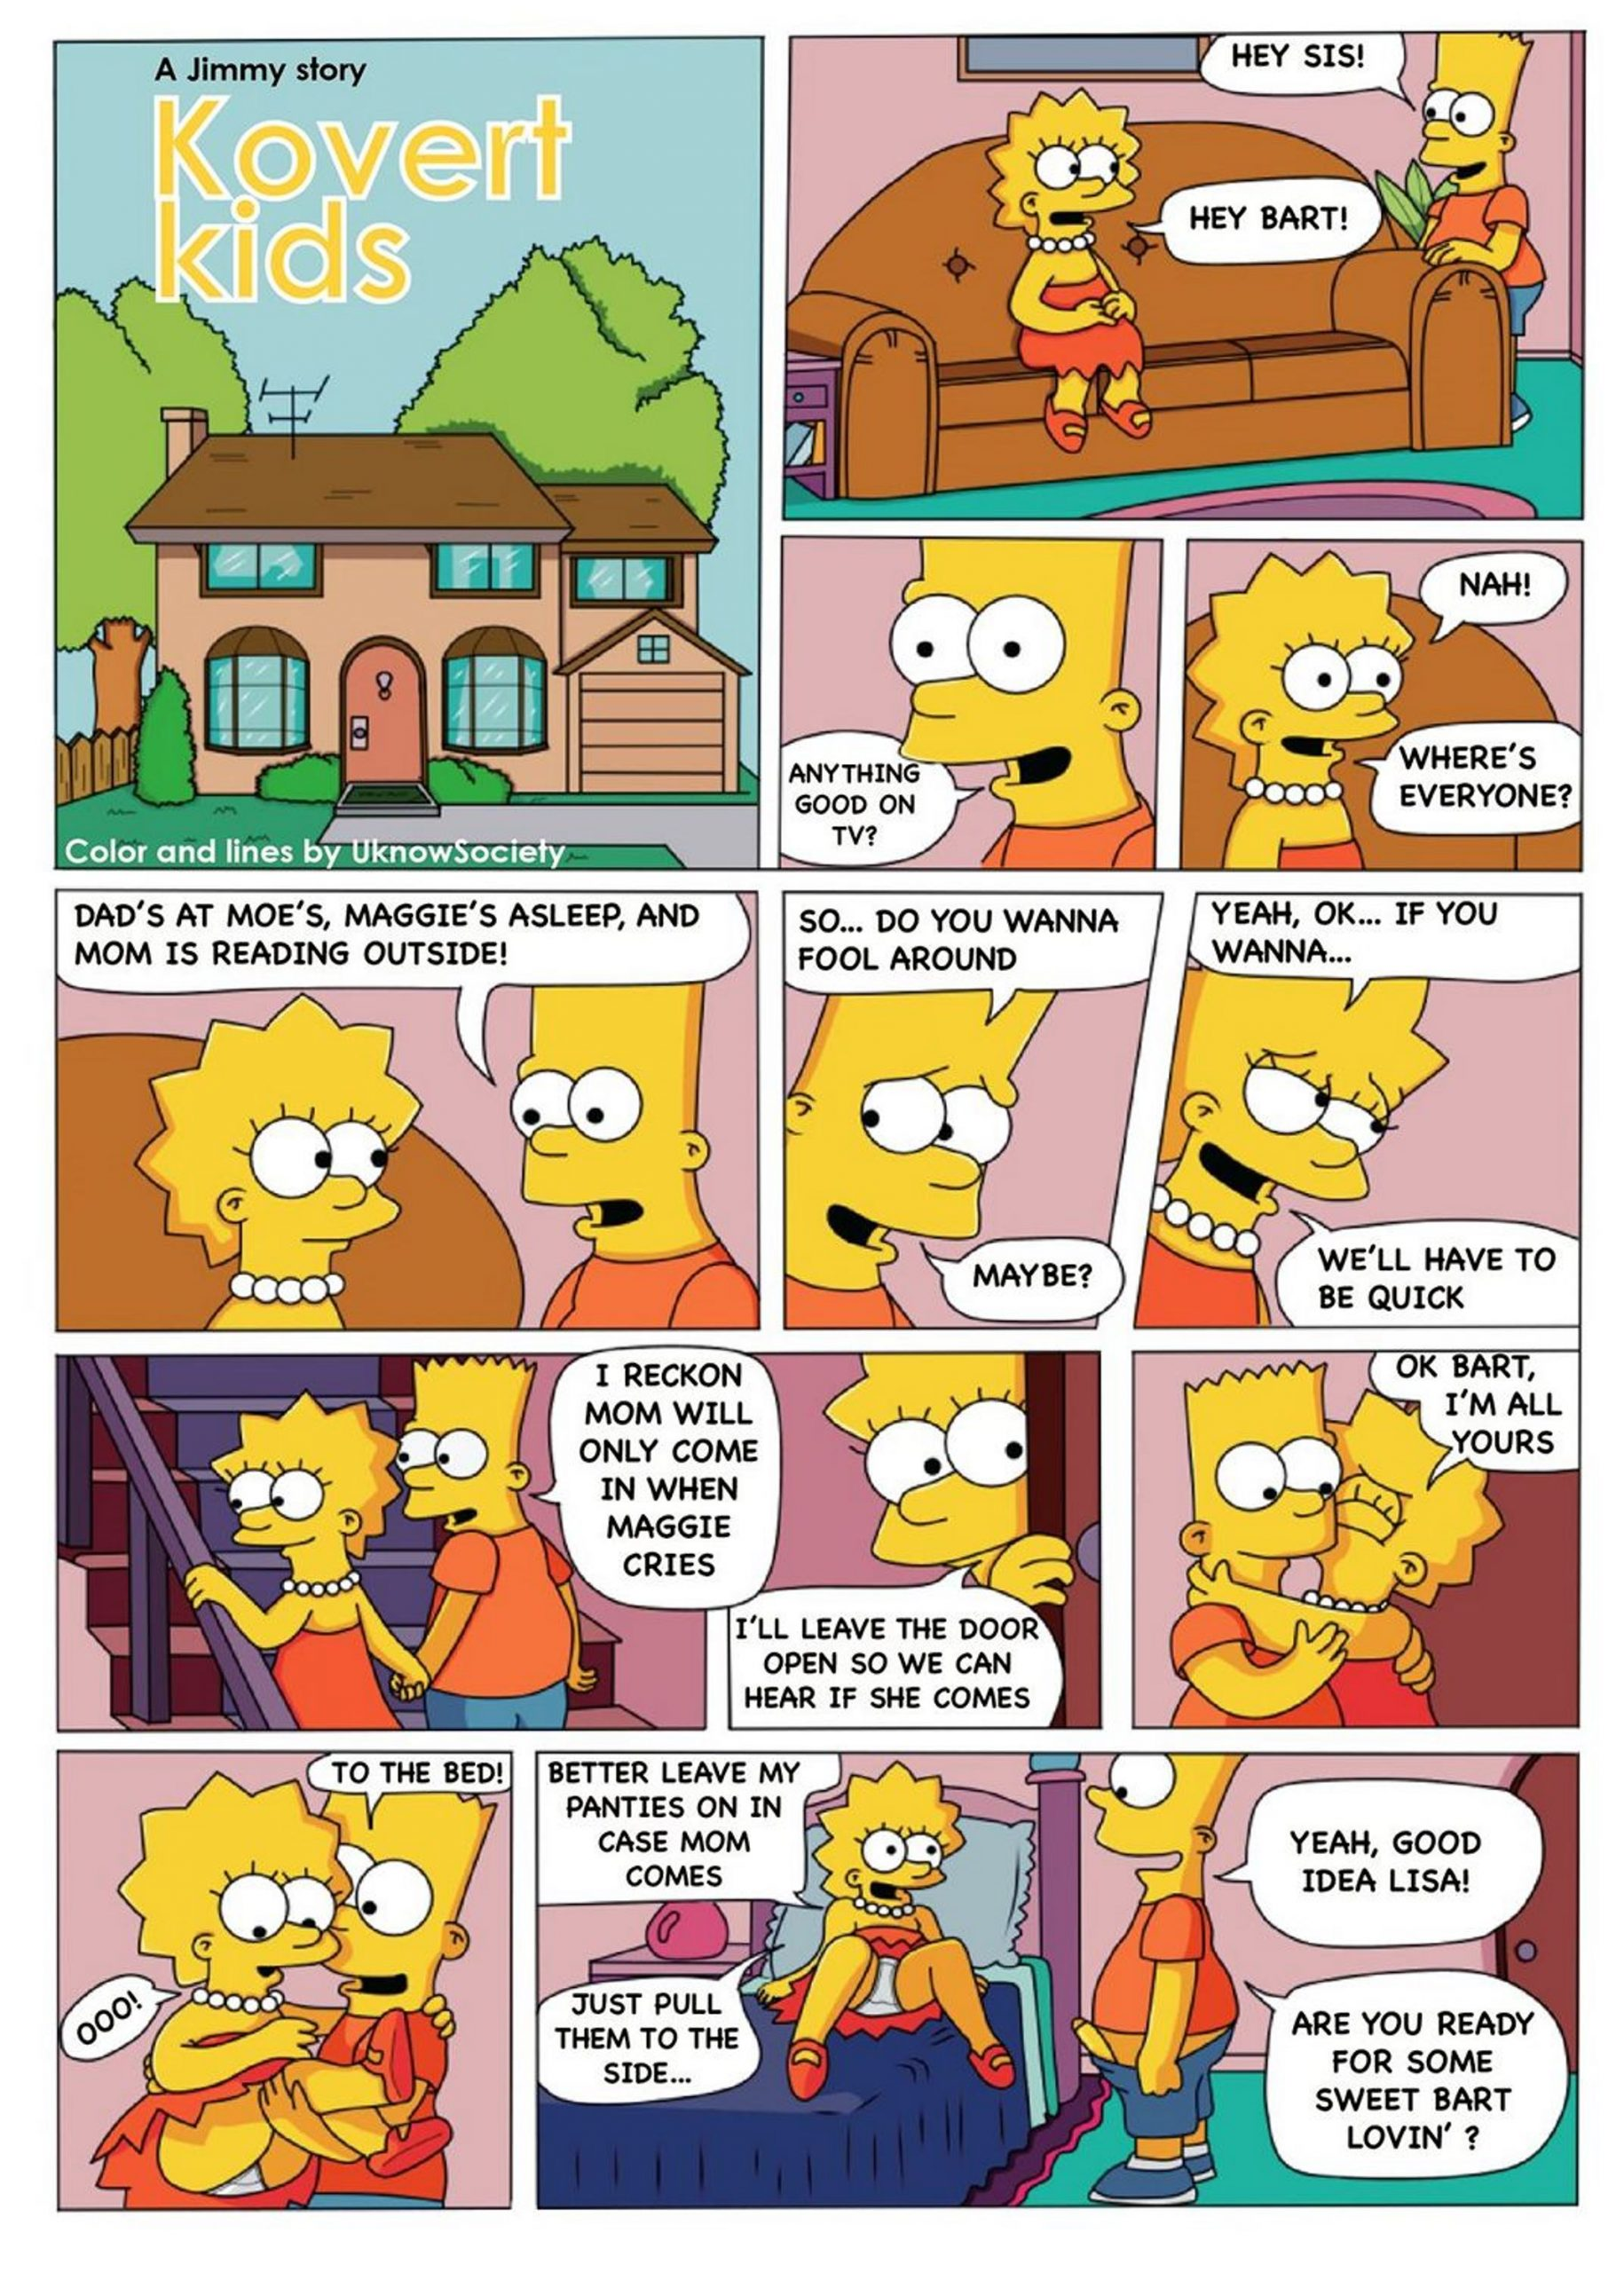 Jimmy - Kovert Kids (The Simpsons)